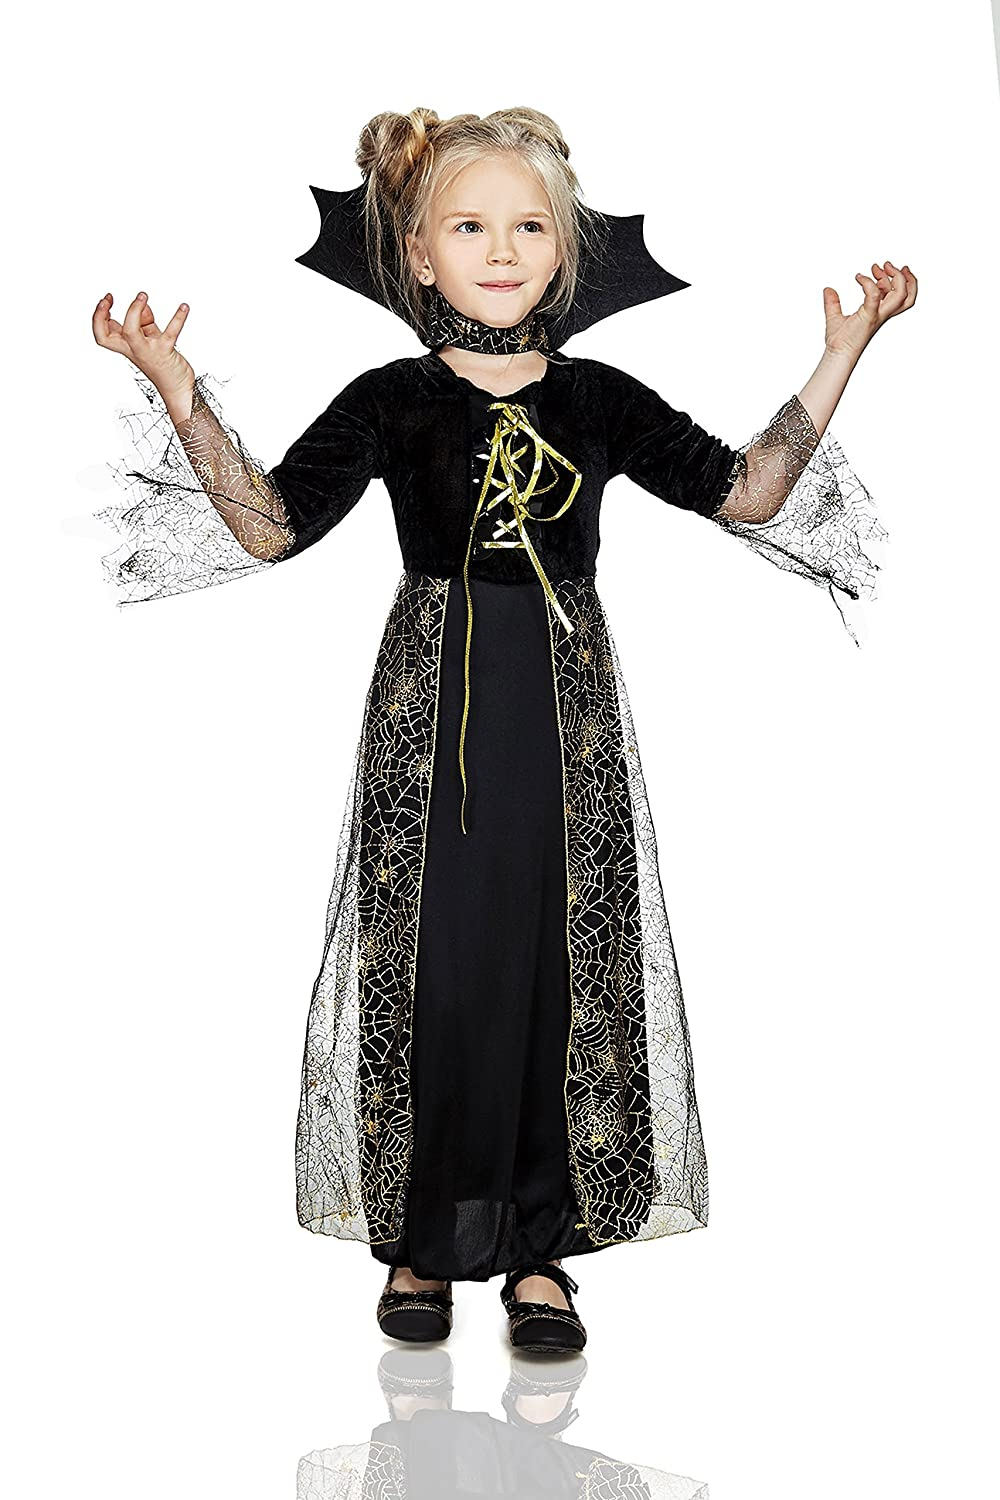 ddd8a76a7712 Amazon.com: La Mascarade Kids Girls Spiderella Halloween Costume Black  Spider Witch Dress Up & Role Play: Clothing